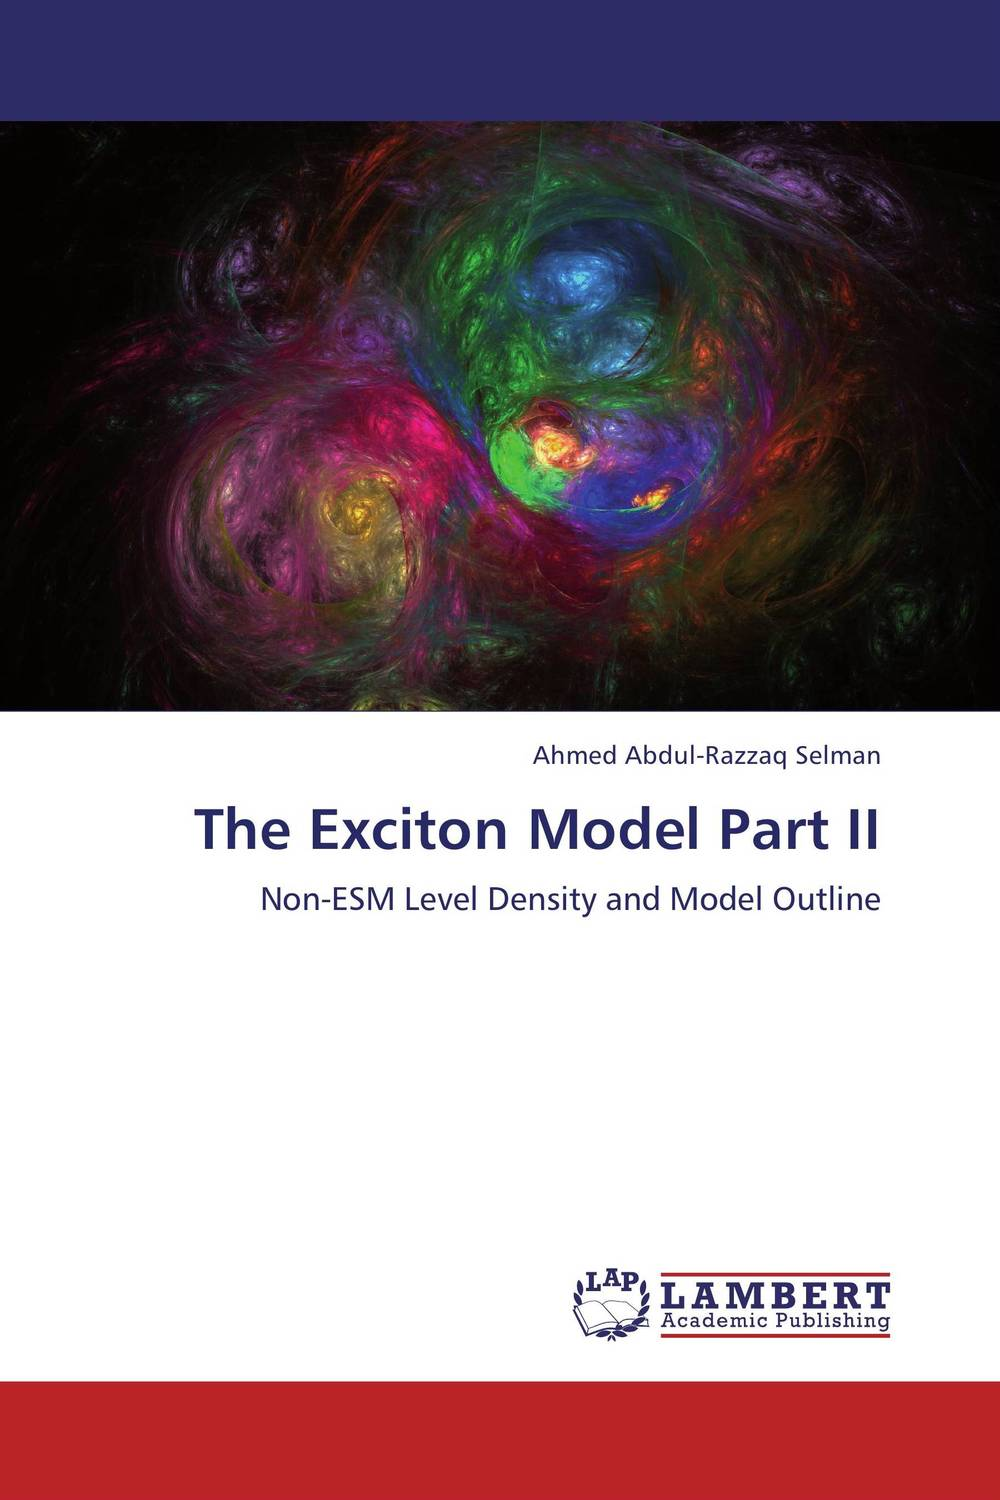 The Exciton Model Part II driven to distraction